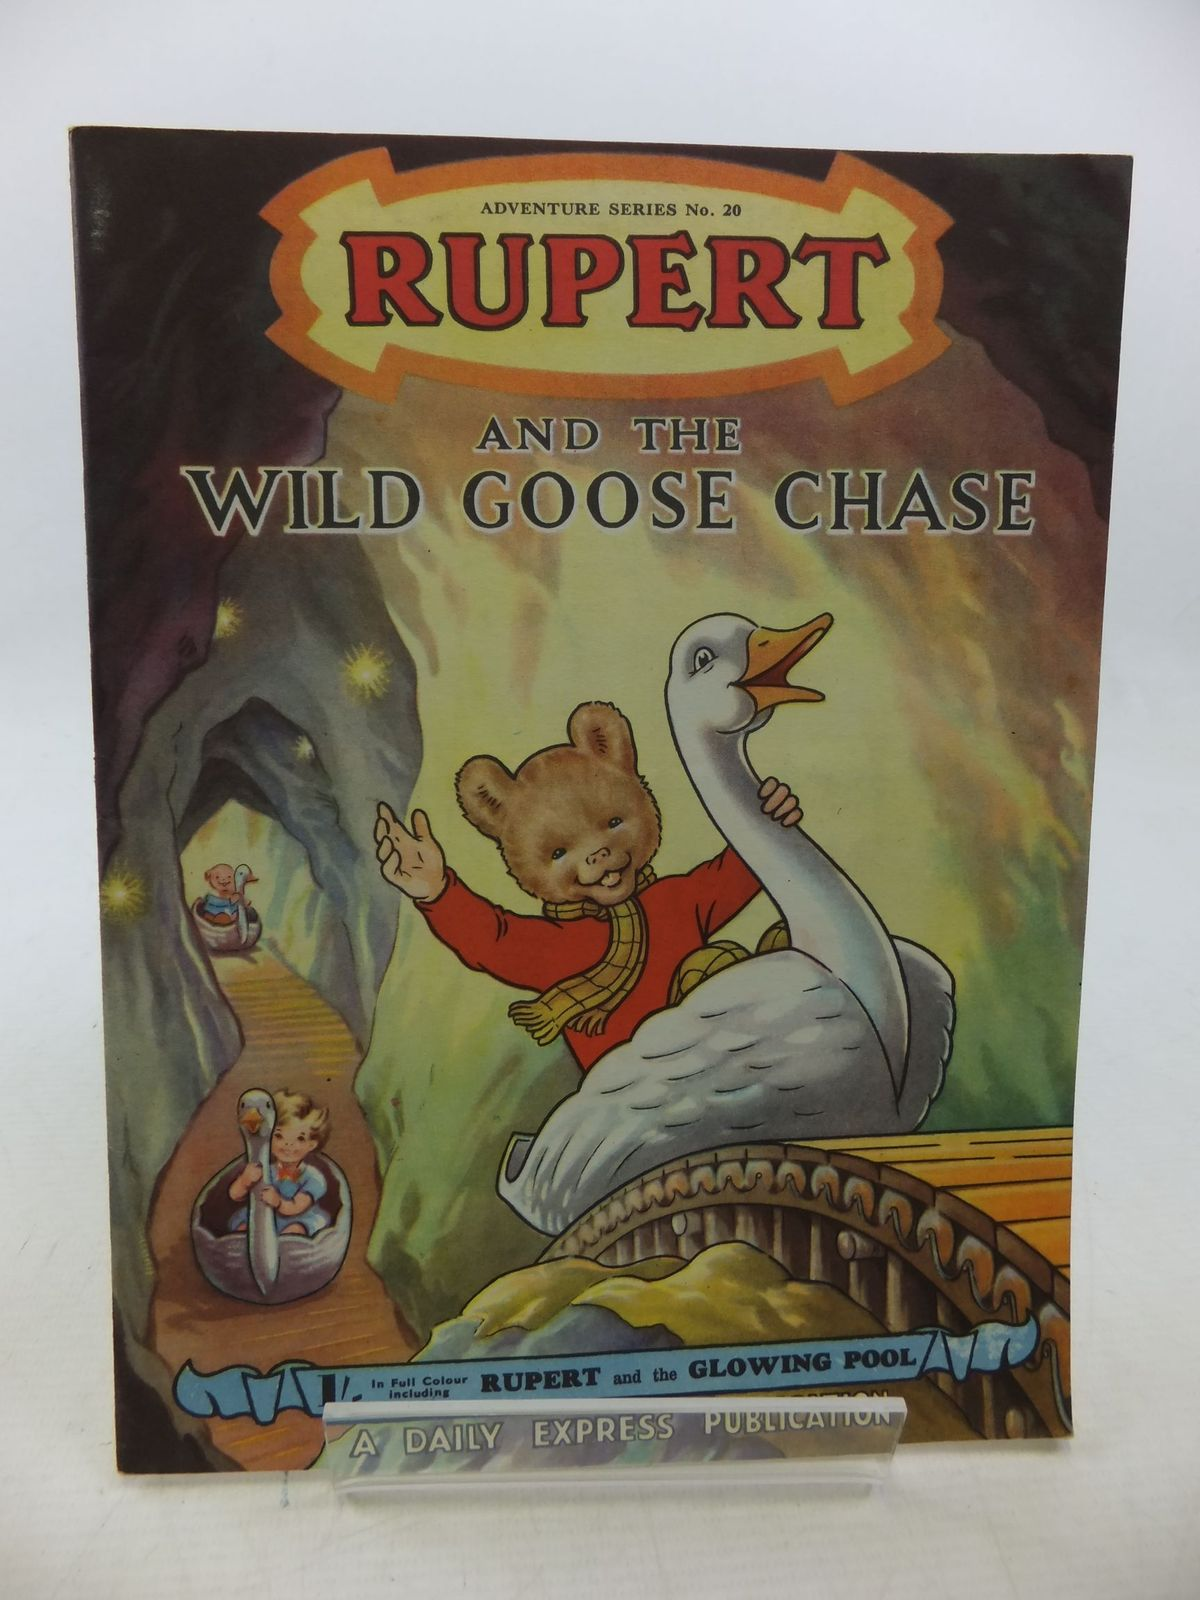 Photo of RUPERT ADVENTURE SERIES No. 20 - RUPERT AND THE WILD GOOSE CHASE written by Bestall, Alfred illustrated by Bestall, Alfred published by Daily Express (STOCK CODE: 2114371)  for sale by Stella & Rose's Books